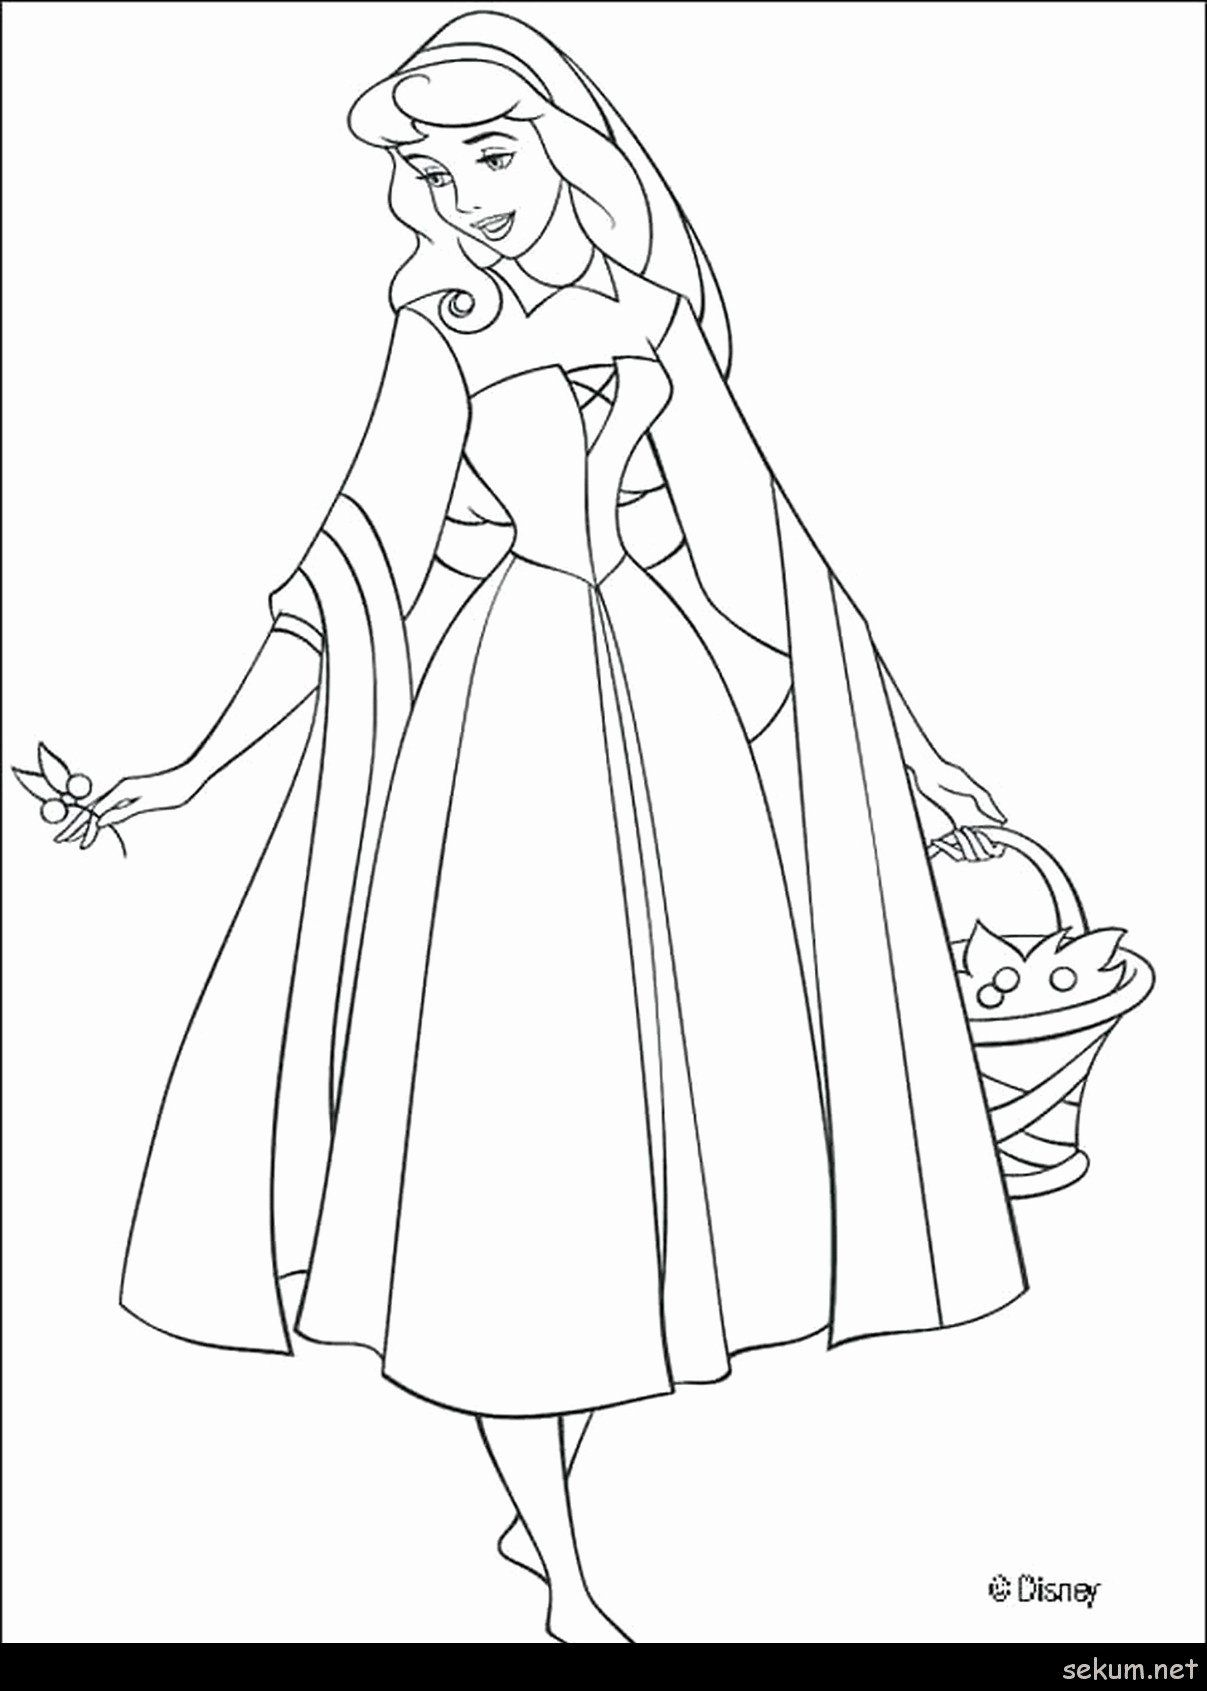 Princess Aurora Coloring Page Luxury Coloring Pages Princess Coloring Pag Disney Princess Coloring Pages Sleeping Beauty Coloring Pages Princess Coloring Pages